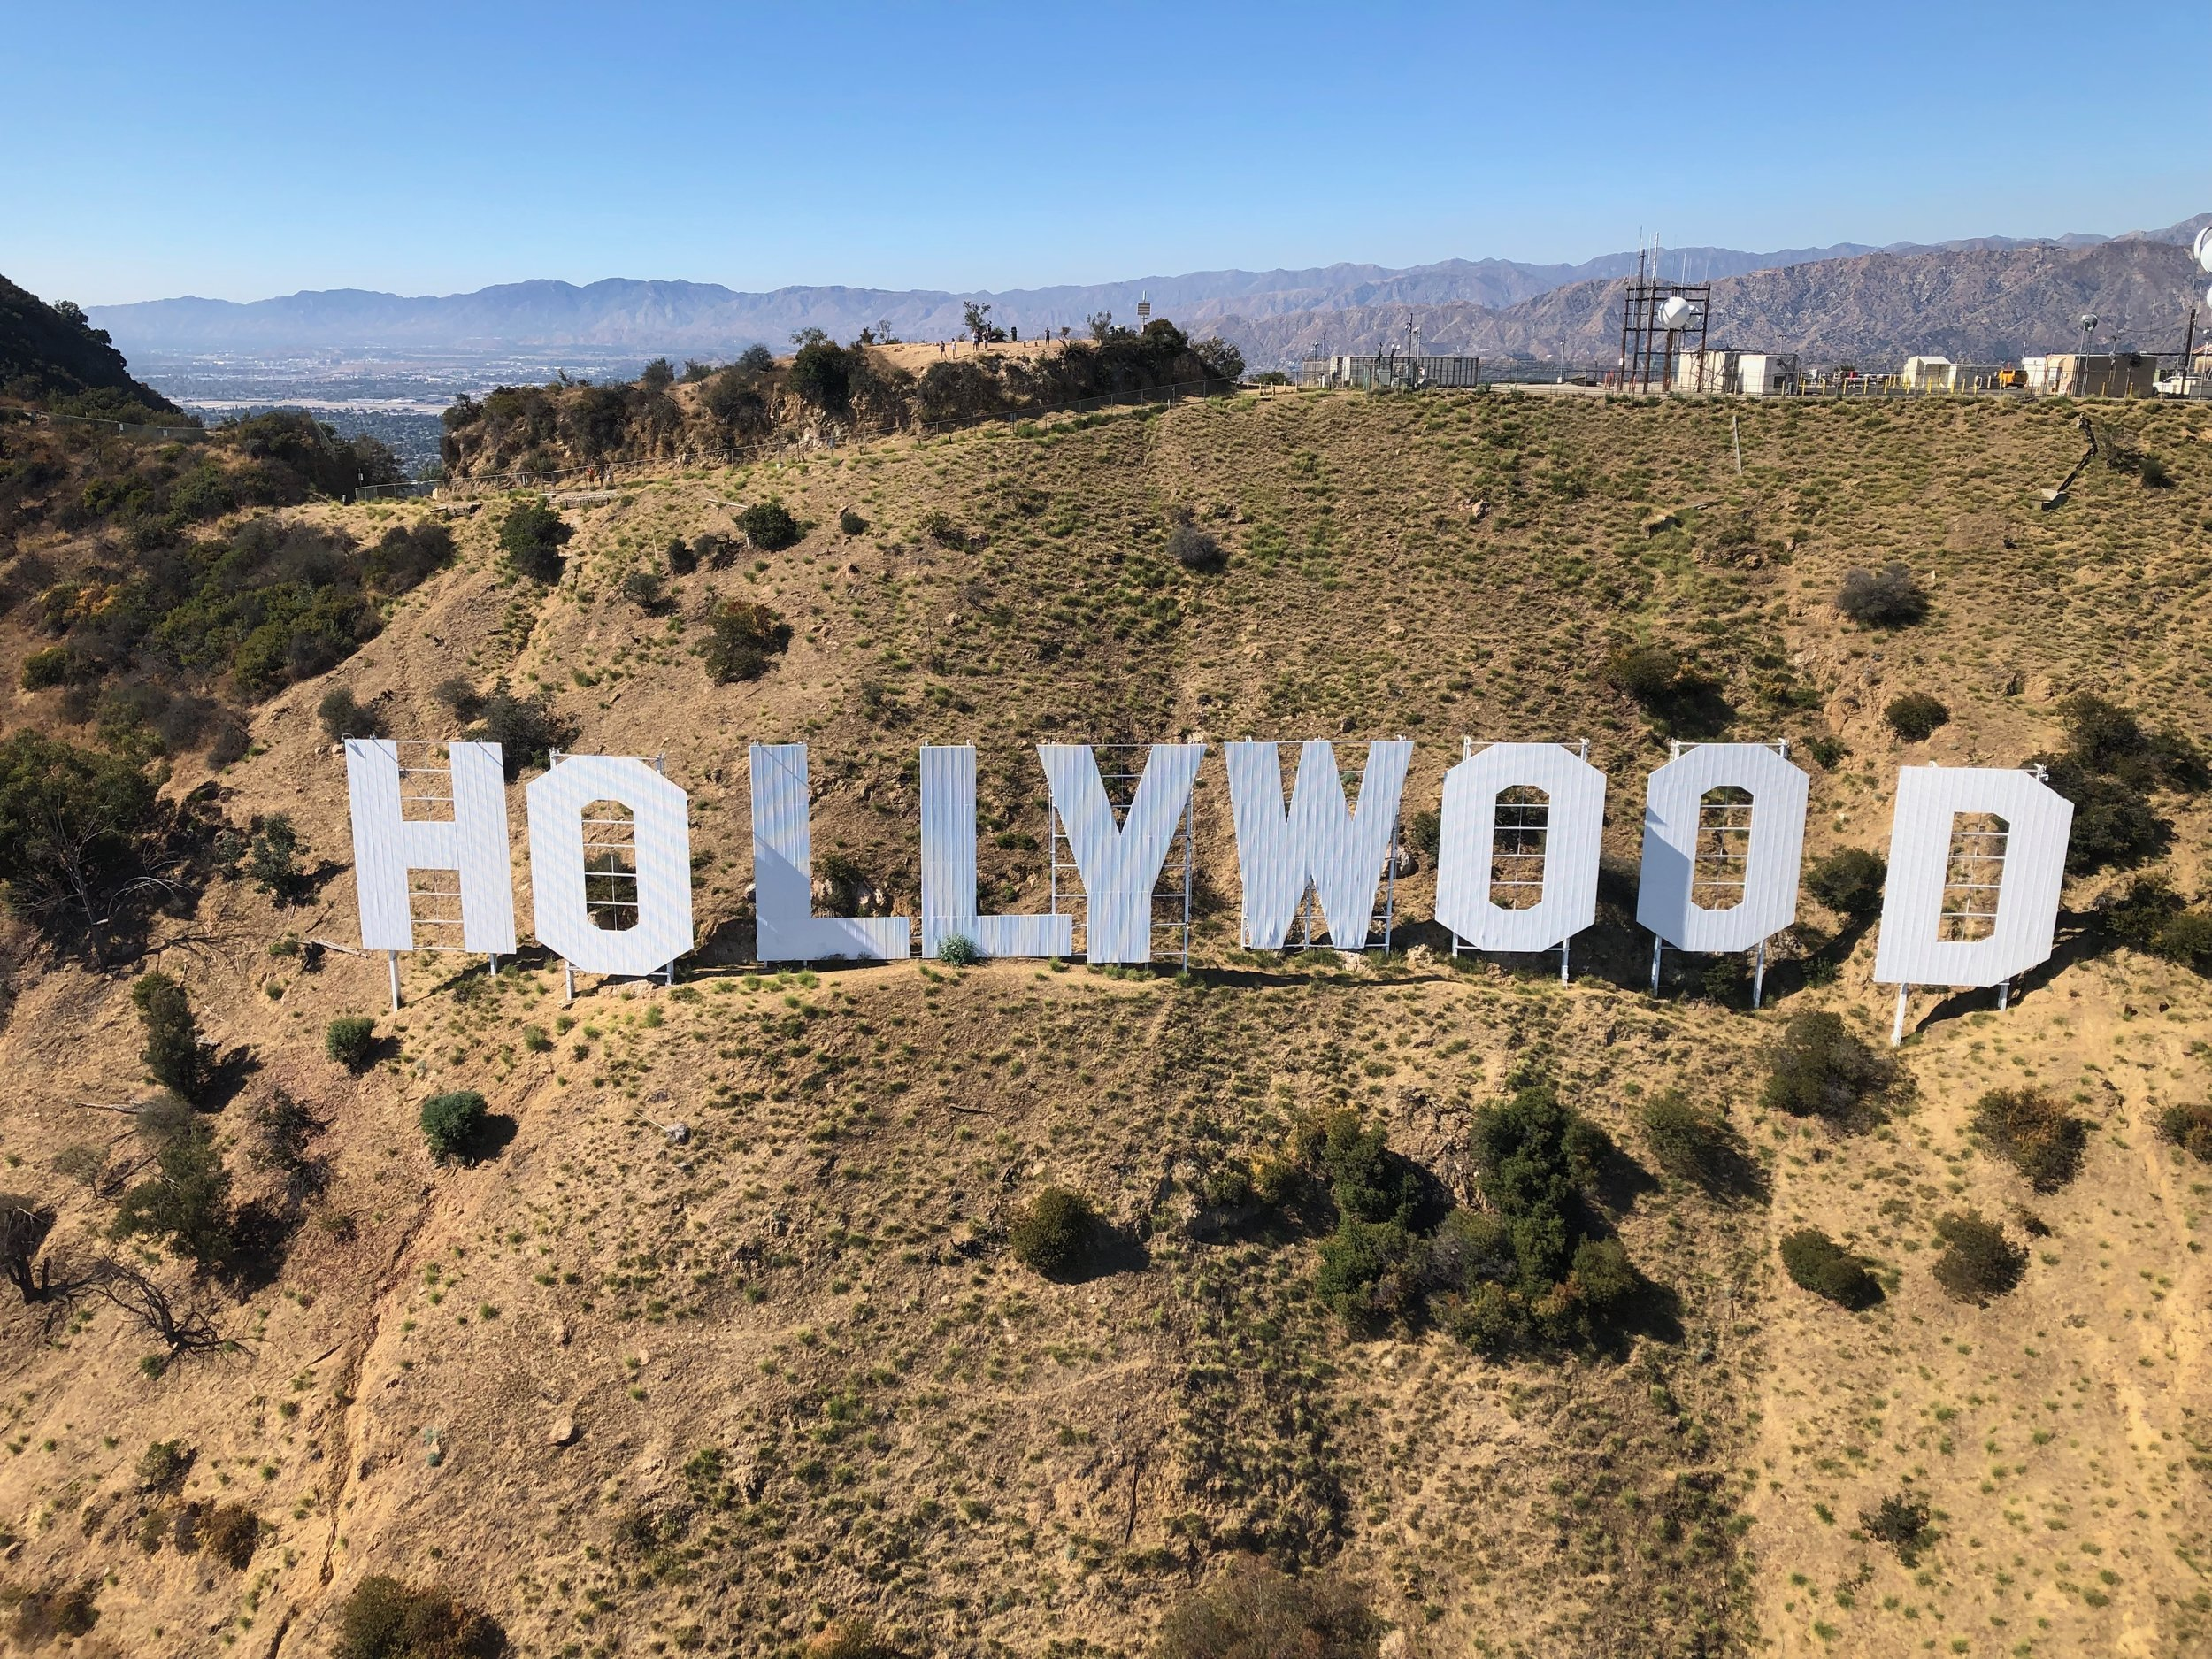 Photo taken from a helicopter next to the famous sign.